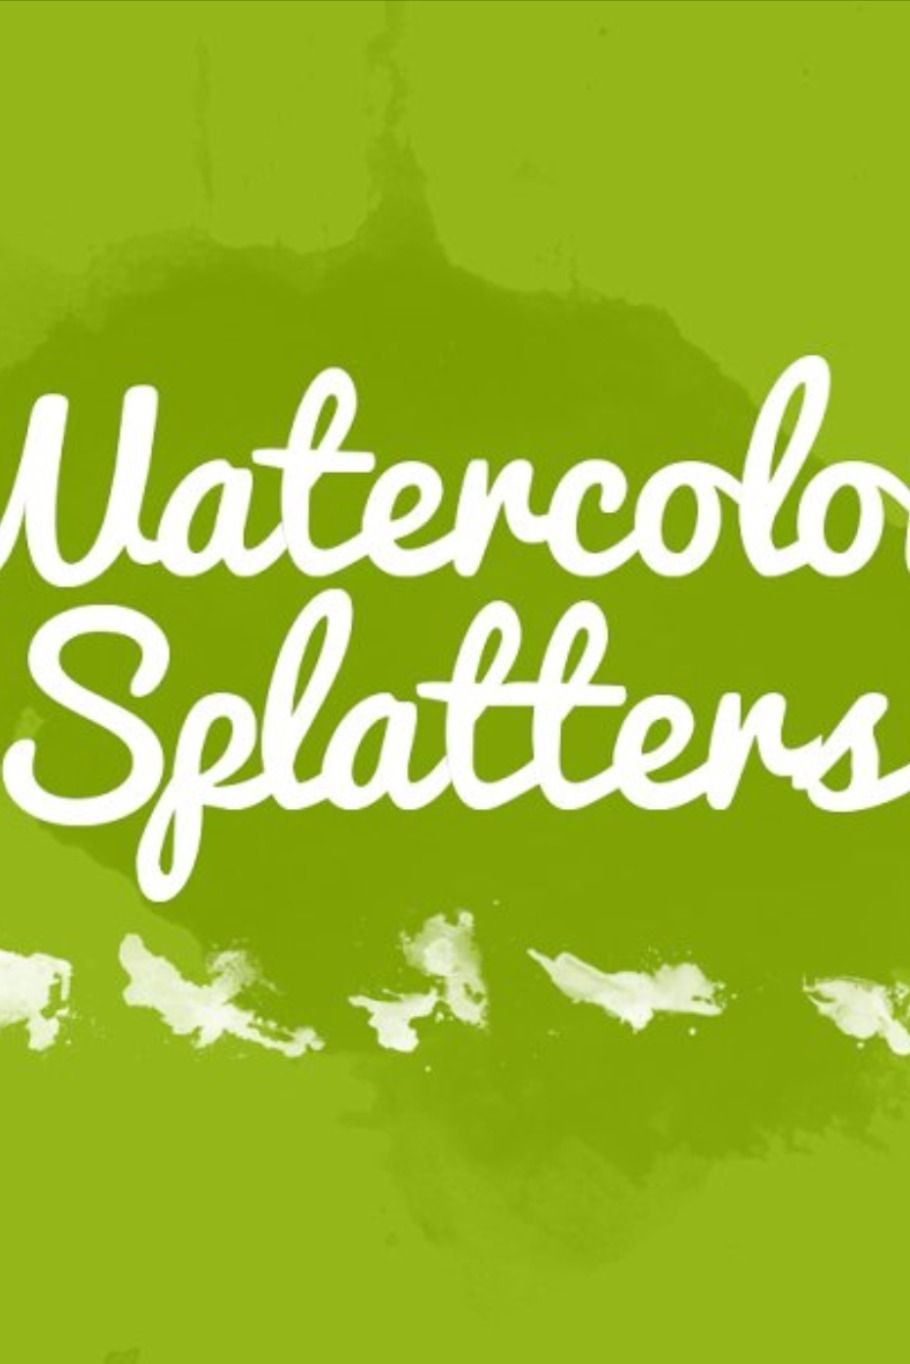 32 Watercolor Splatters In 2020 Watercolor Splatter Free Paper